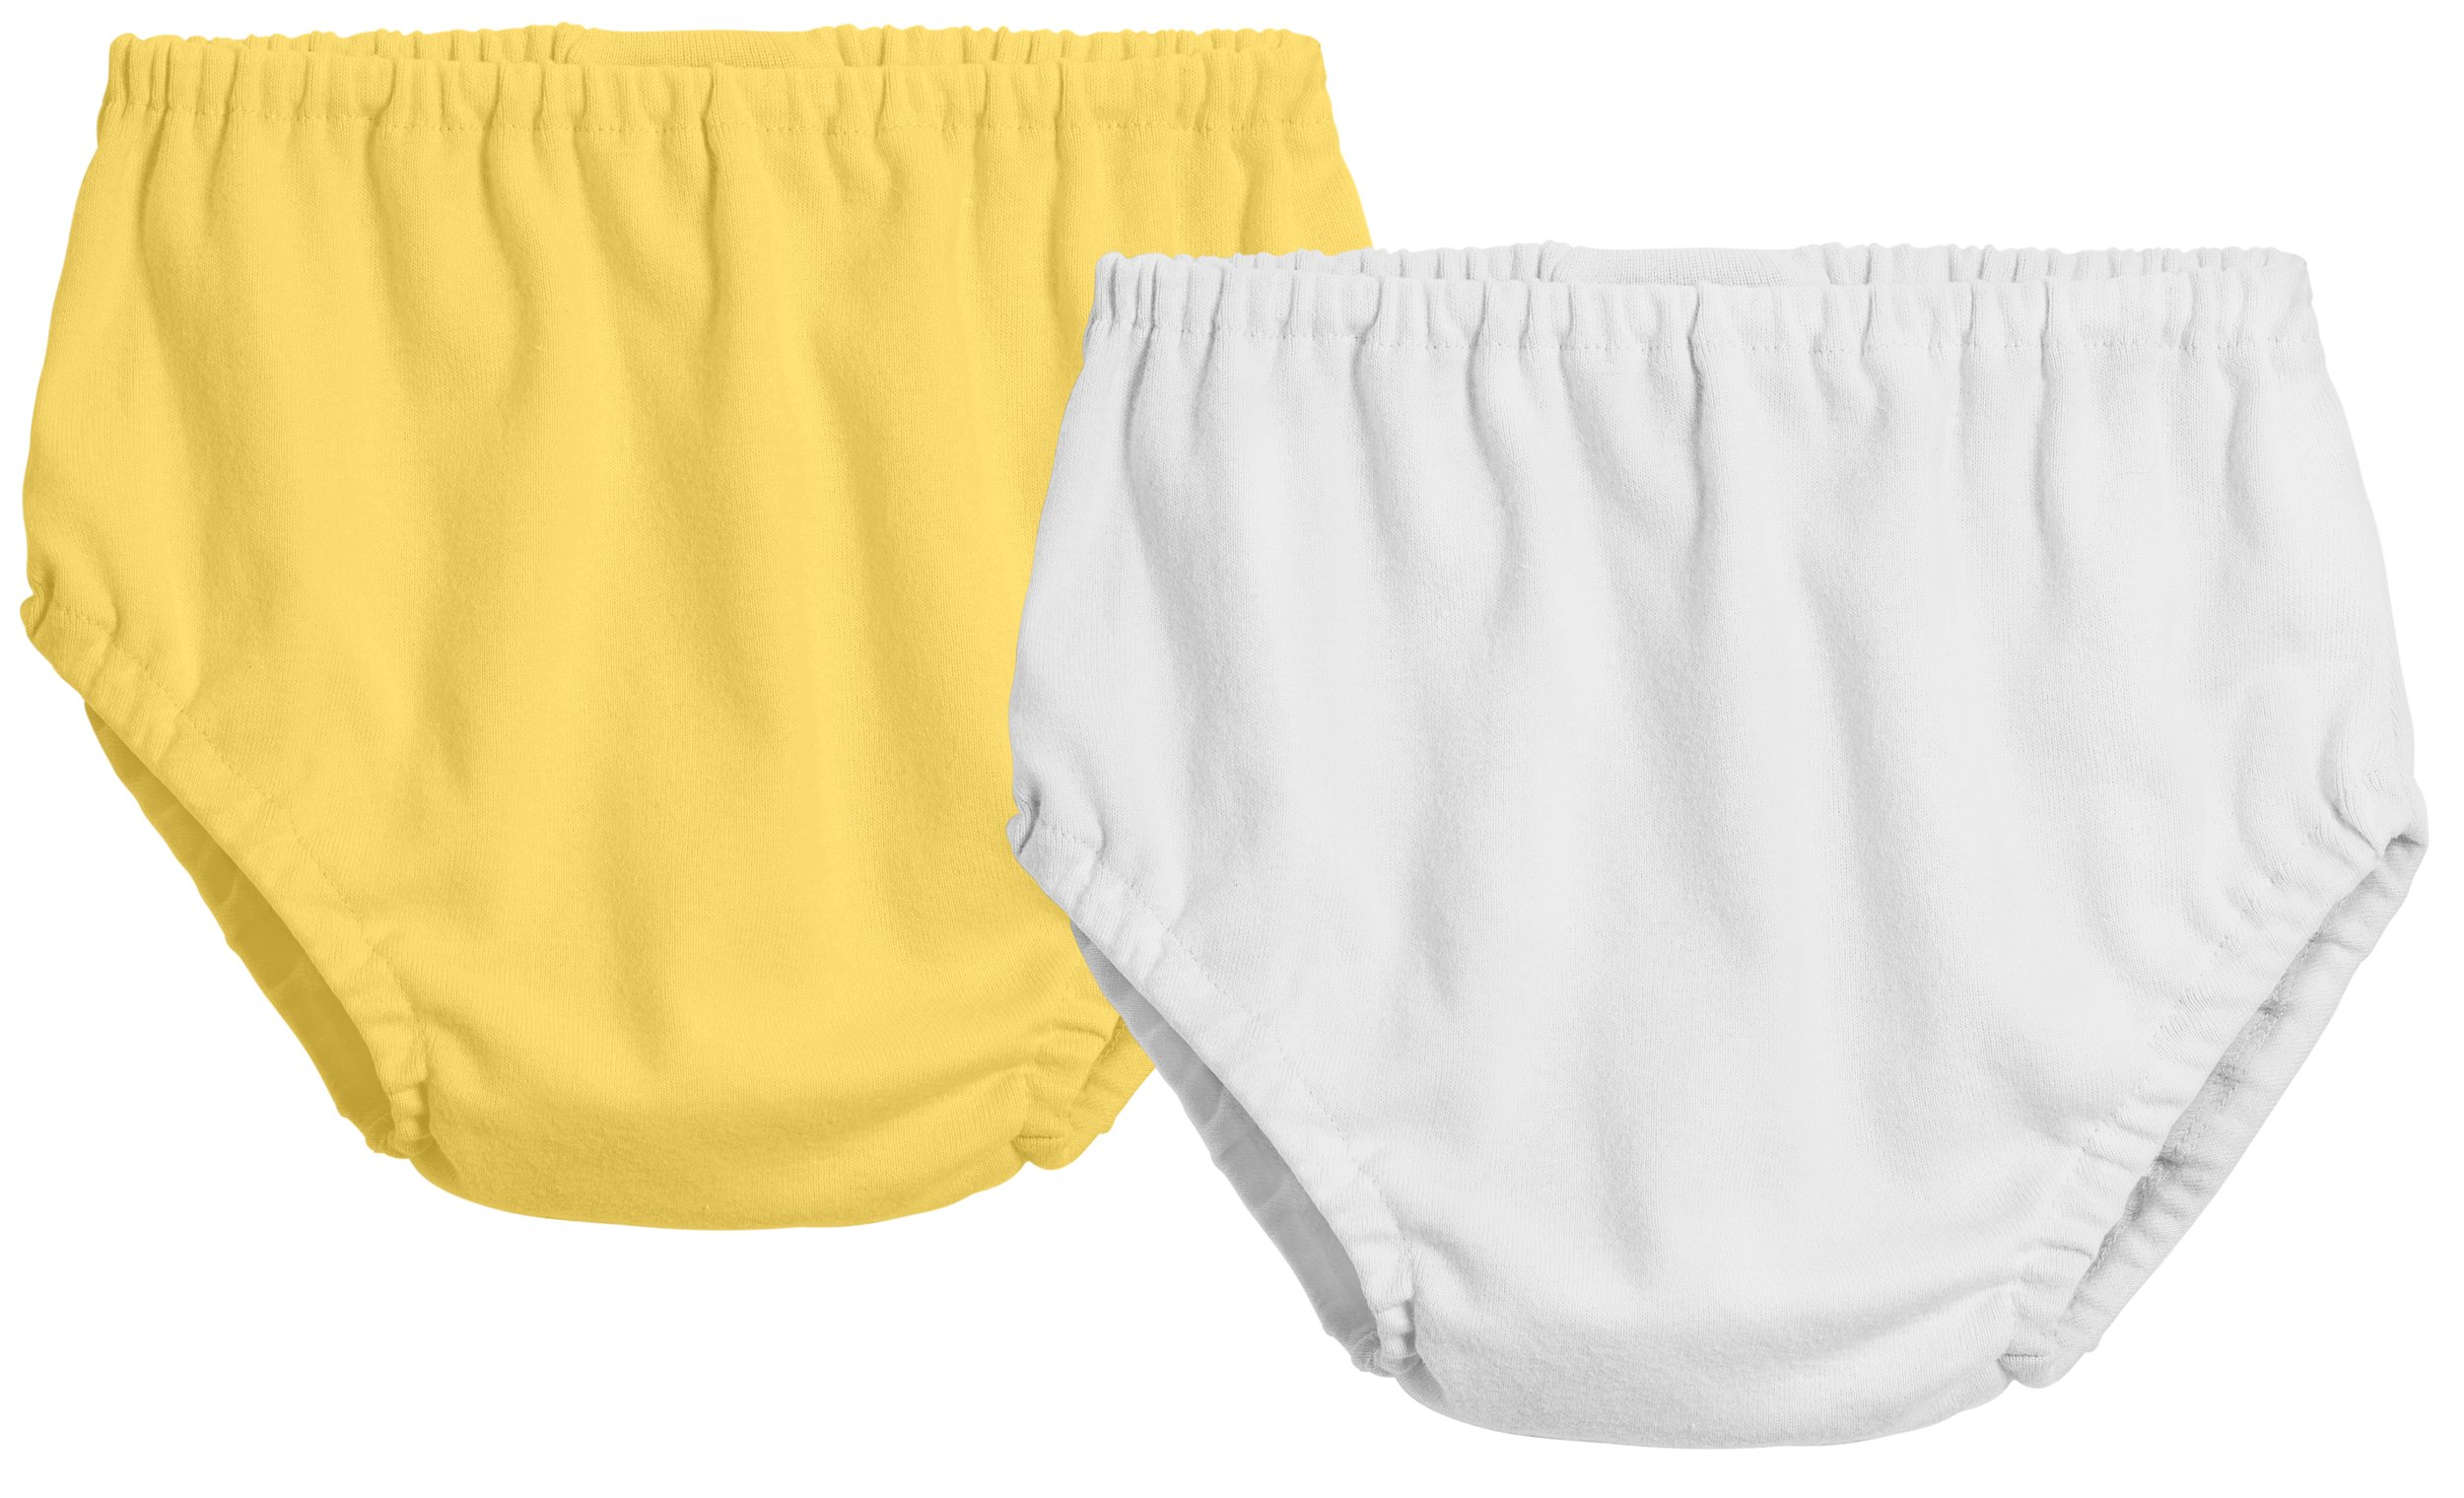 City Threads 2-Pack Baby Girls' and Baby Boys' Unisex Diaper Covers Bloomers Soft Cotton, White/Yellow, 9/12 m